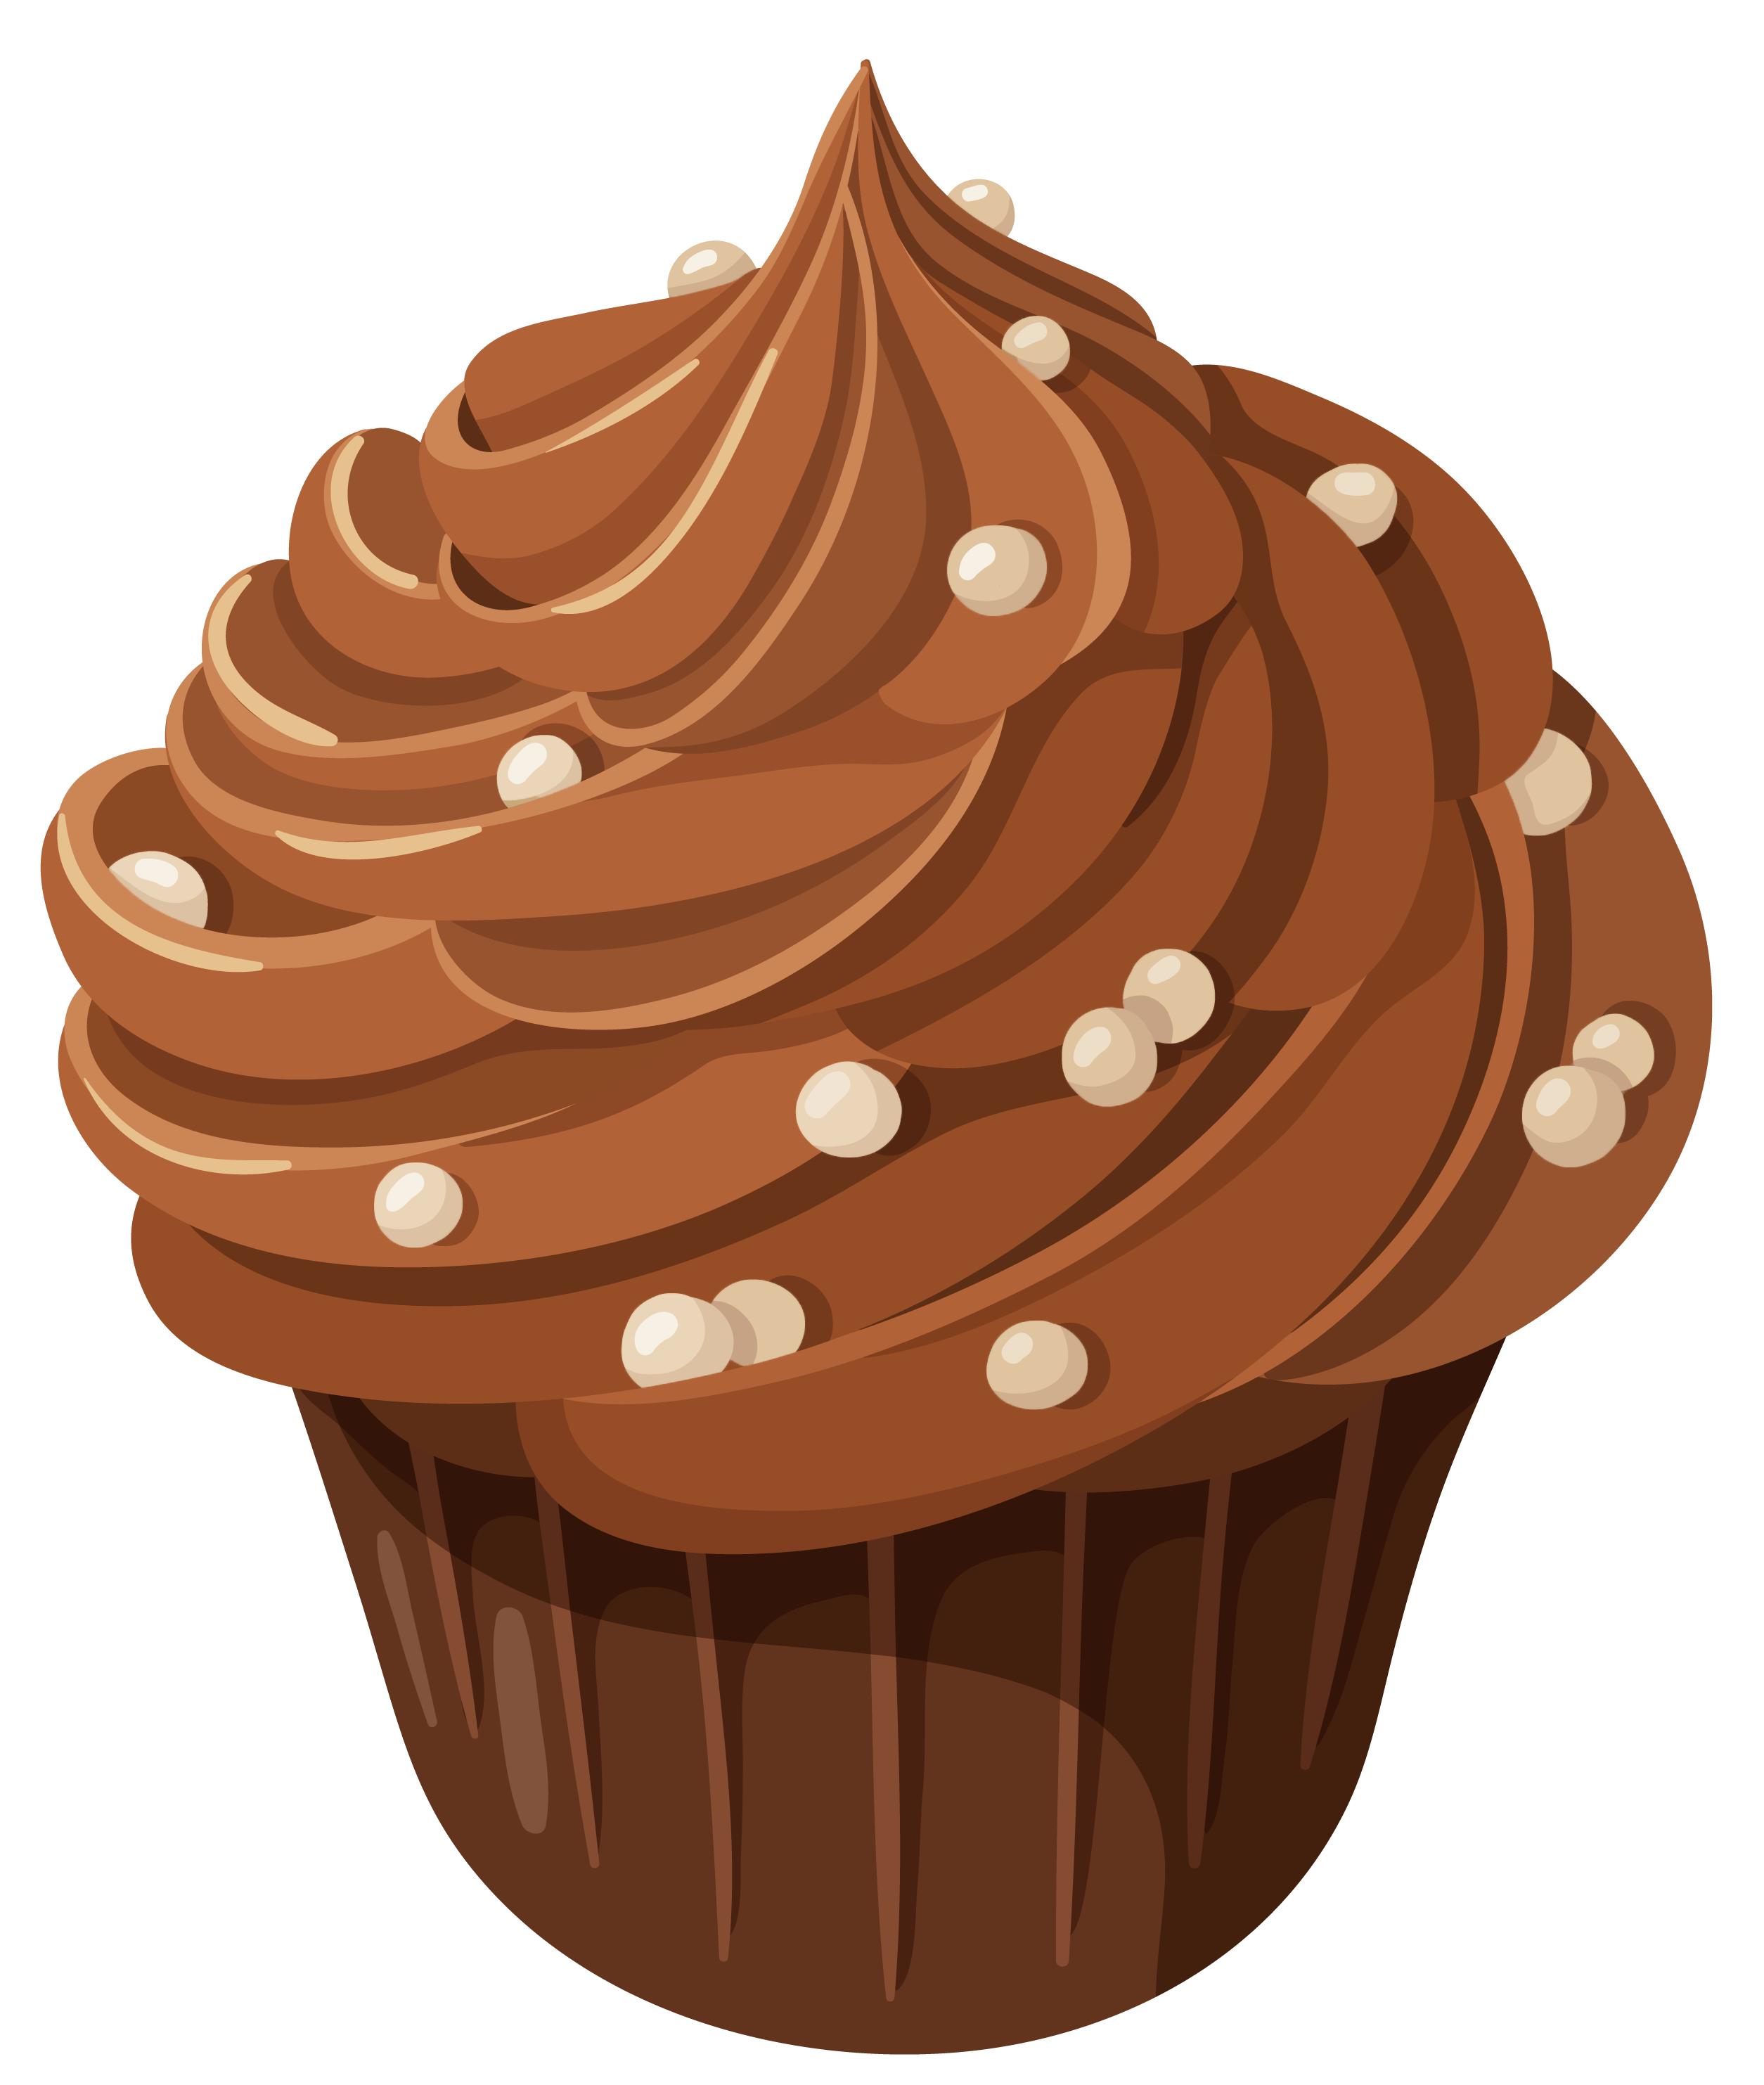 Chocolate Cake Clipart : Chocolate flavor clipart - Clipground